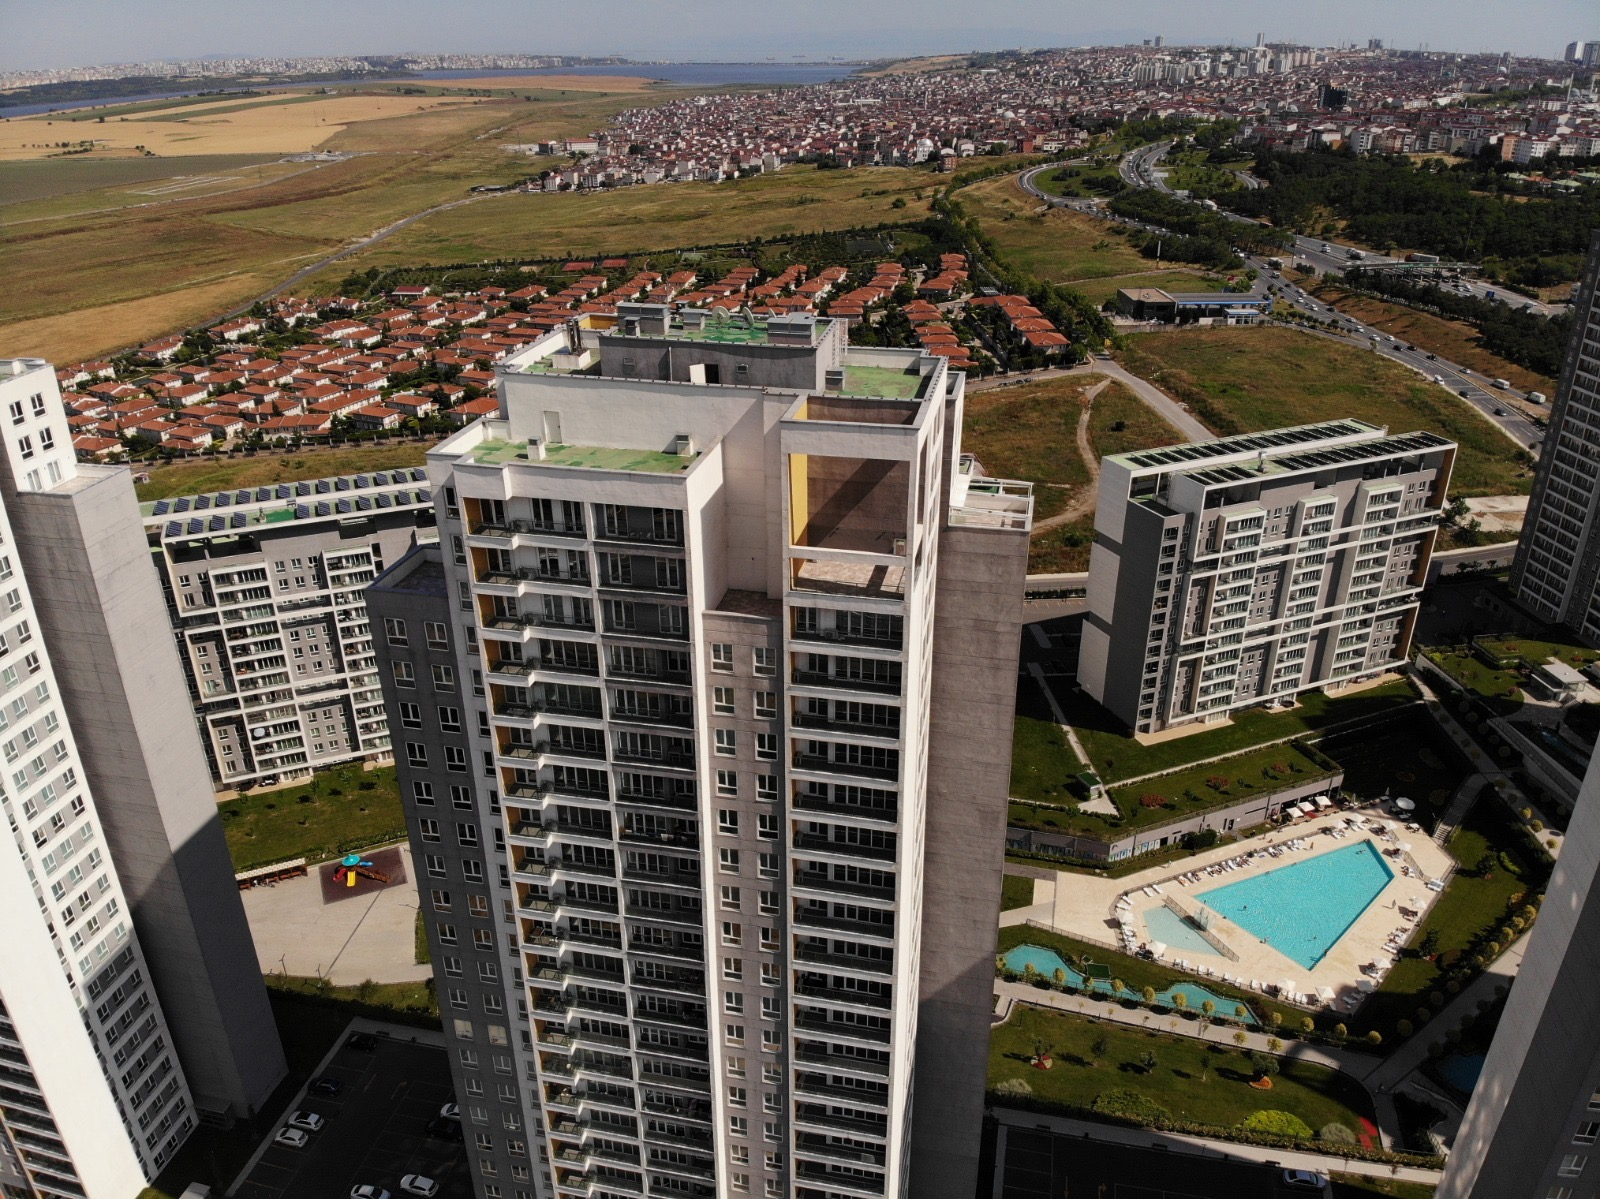 3+1 Apartment in Bahcesehir with tenant inside